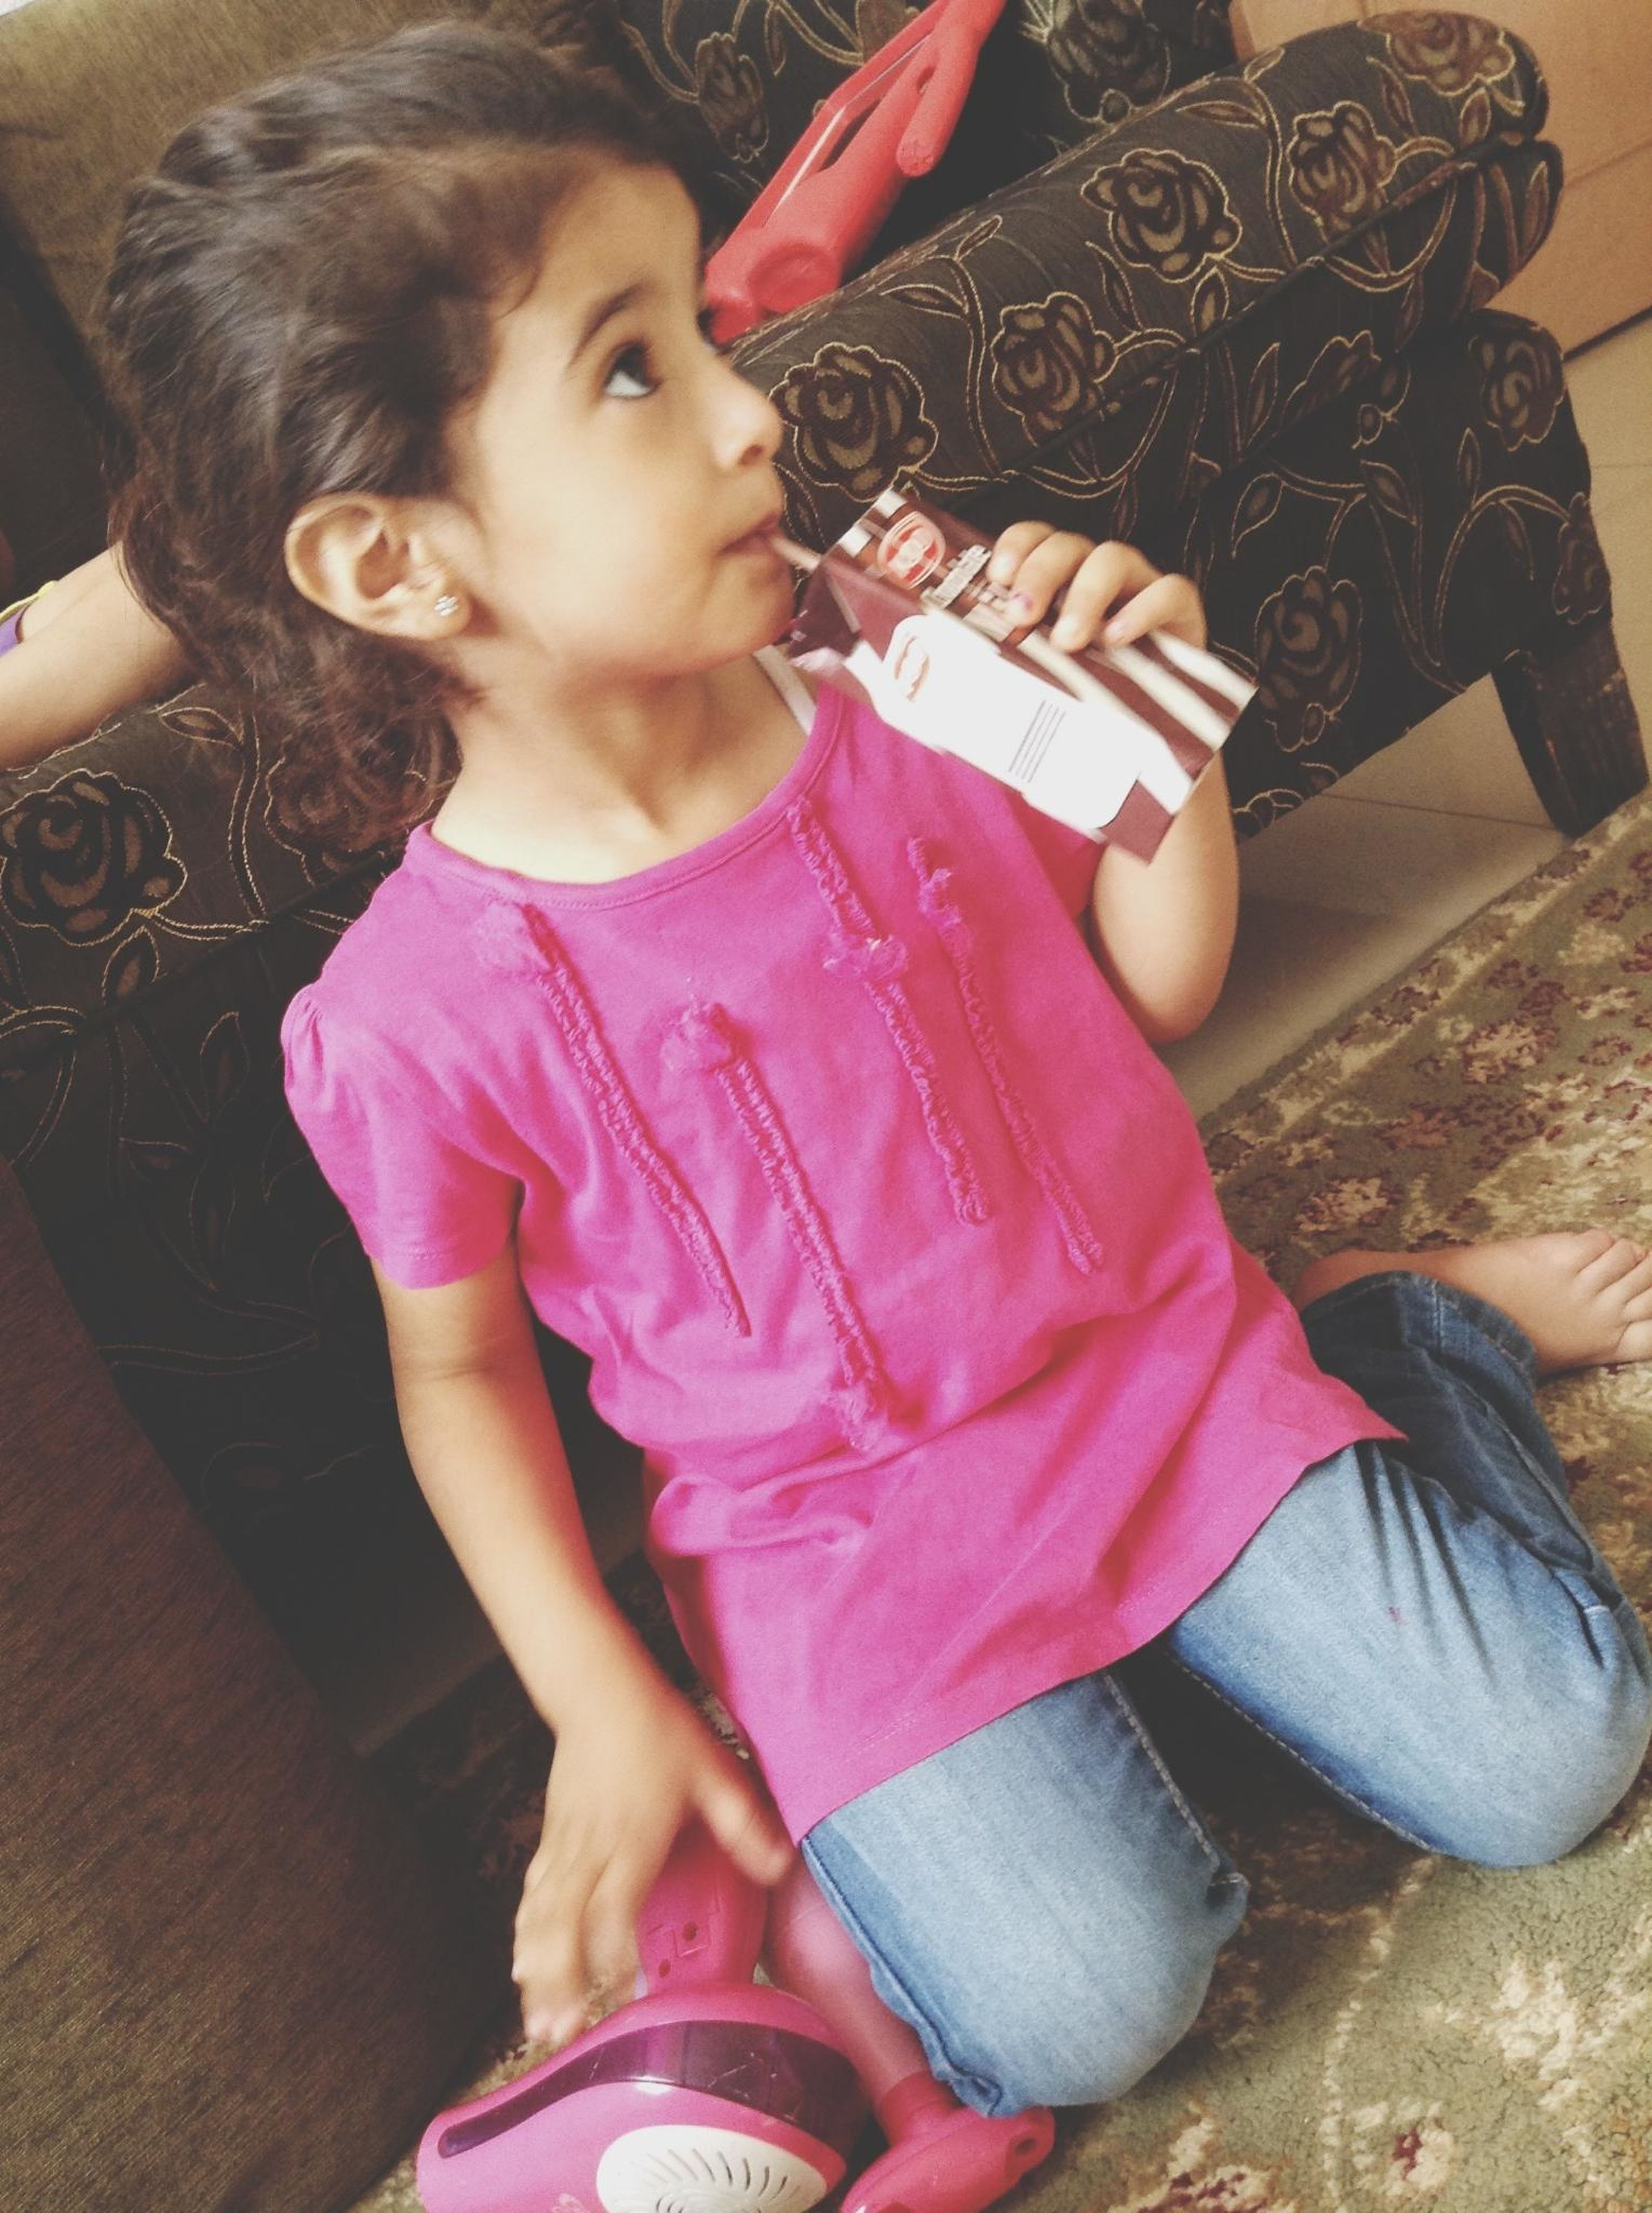 casual clothing, person, lifestyles, childhood, leisure activity, elementary age, girls, sitting, front view, innocence, cute, high angle view, indoors, three quarter length, full length, togetherness, boys